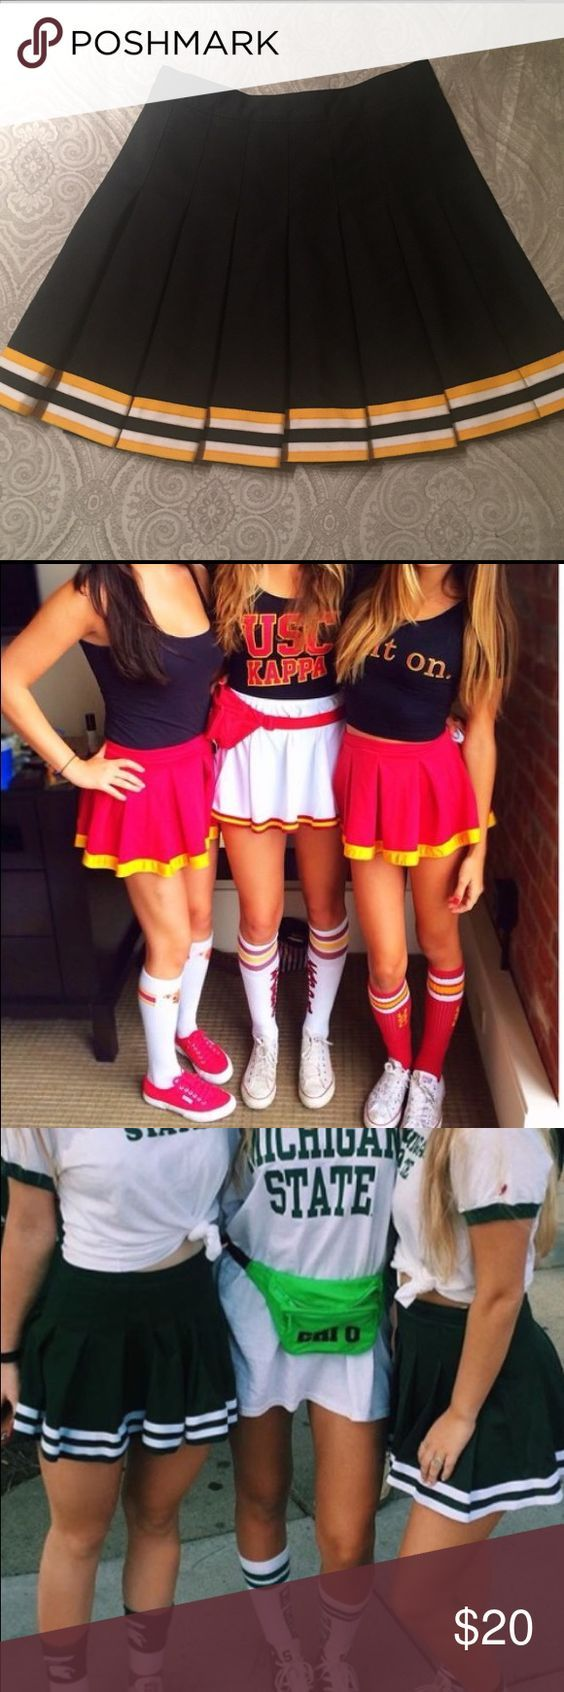 Taylor Nixon- The cheerleading skirts have become a popular trend for football game attire. The classic cheerleading skirts have been seen worn at all the top tailgates and seemingly an iconic piece to your game day outfit. You are most  likely to see these skirt matched with a diy football tank and some high knee socks.